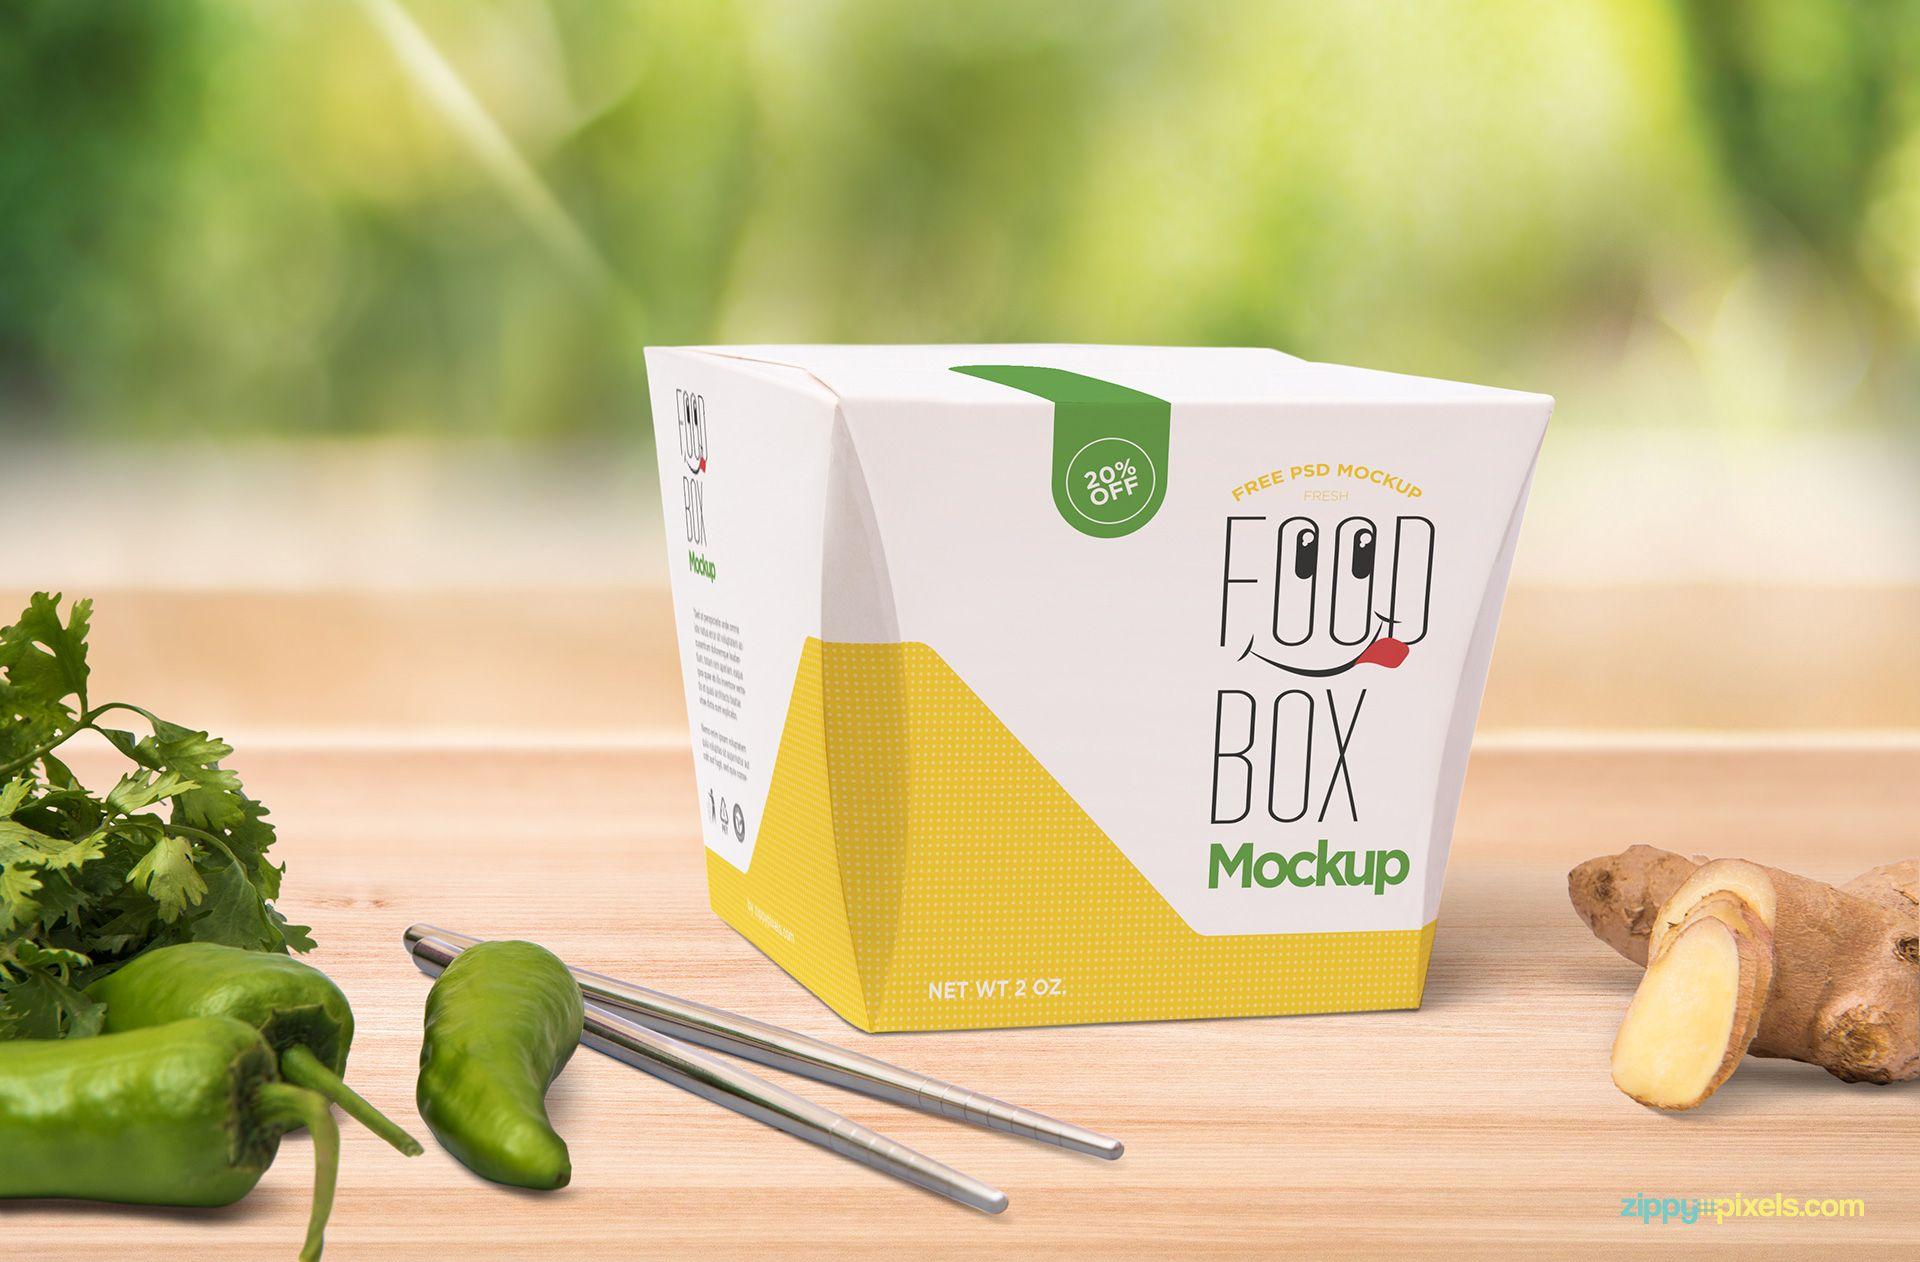 Download Free Realistic Lunch Box Mockup Zippypixels Free Packaging Mockup Box Mockup Mockup Free Psd